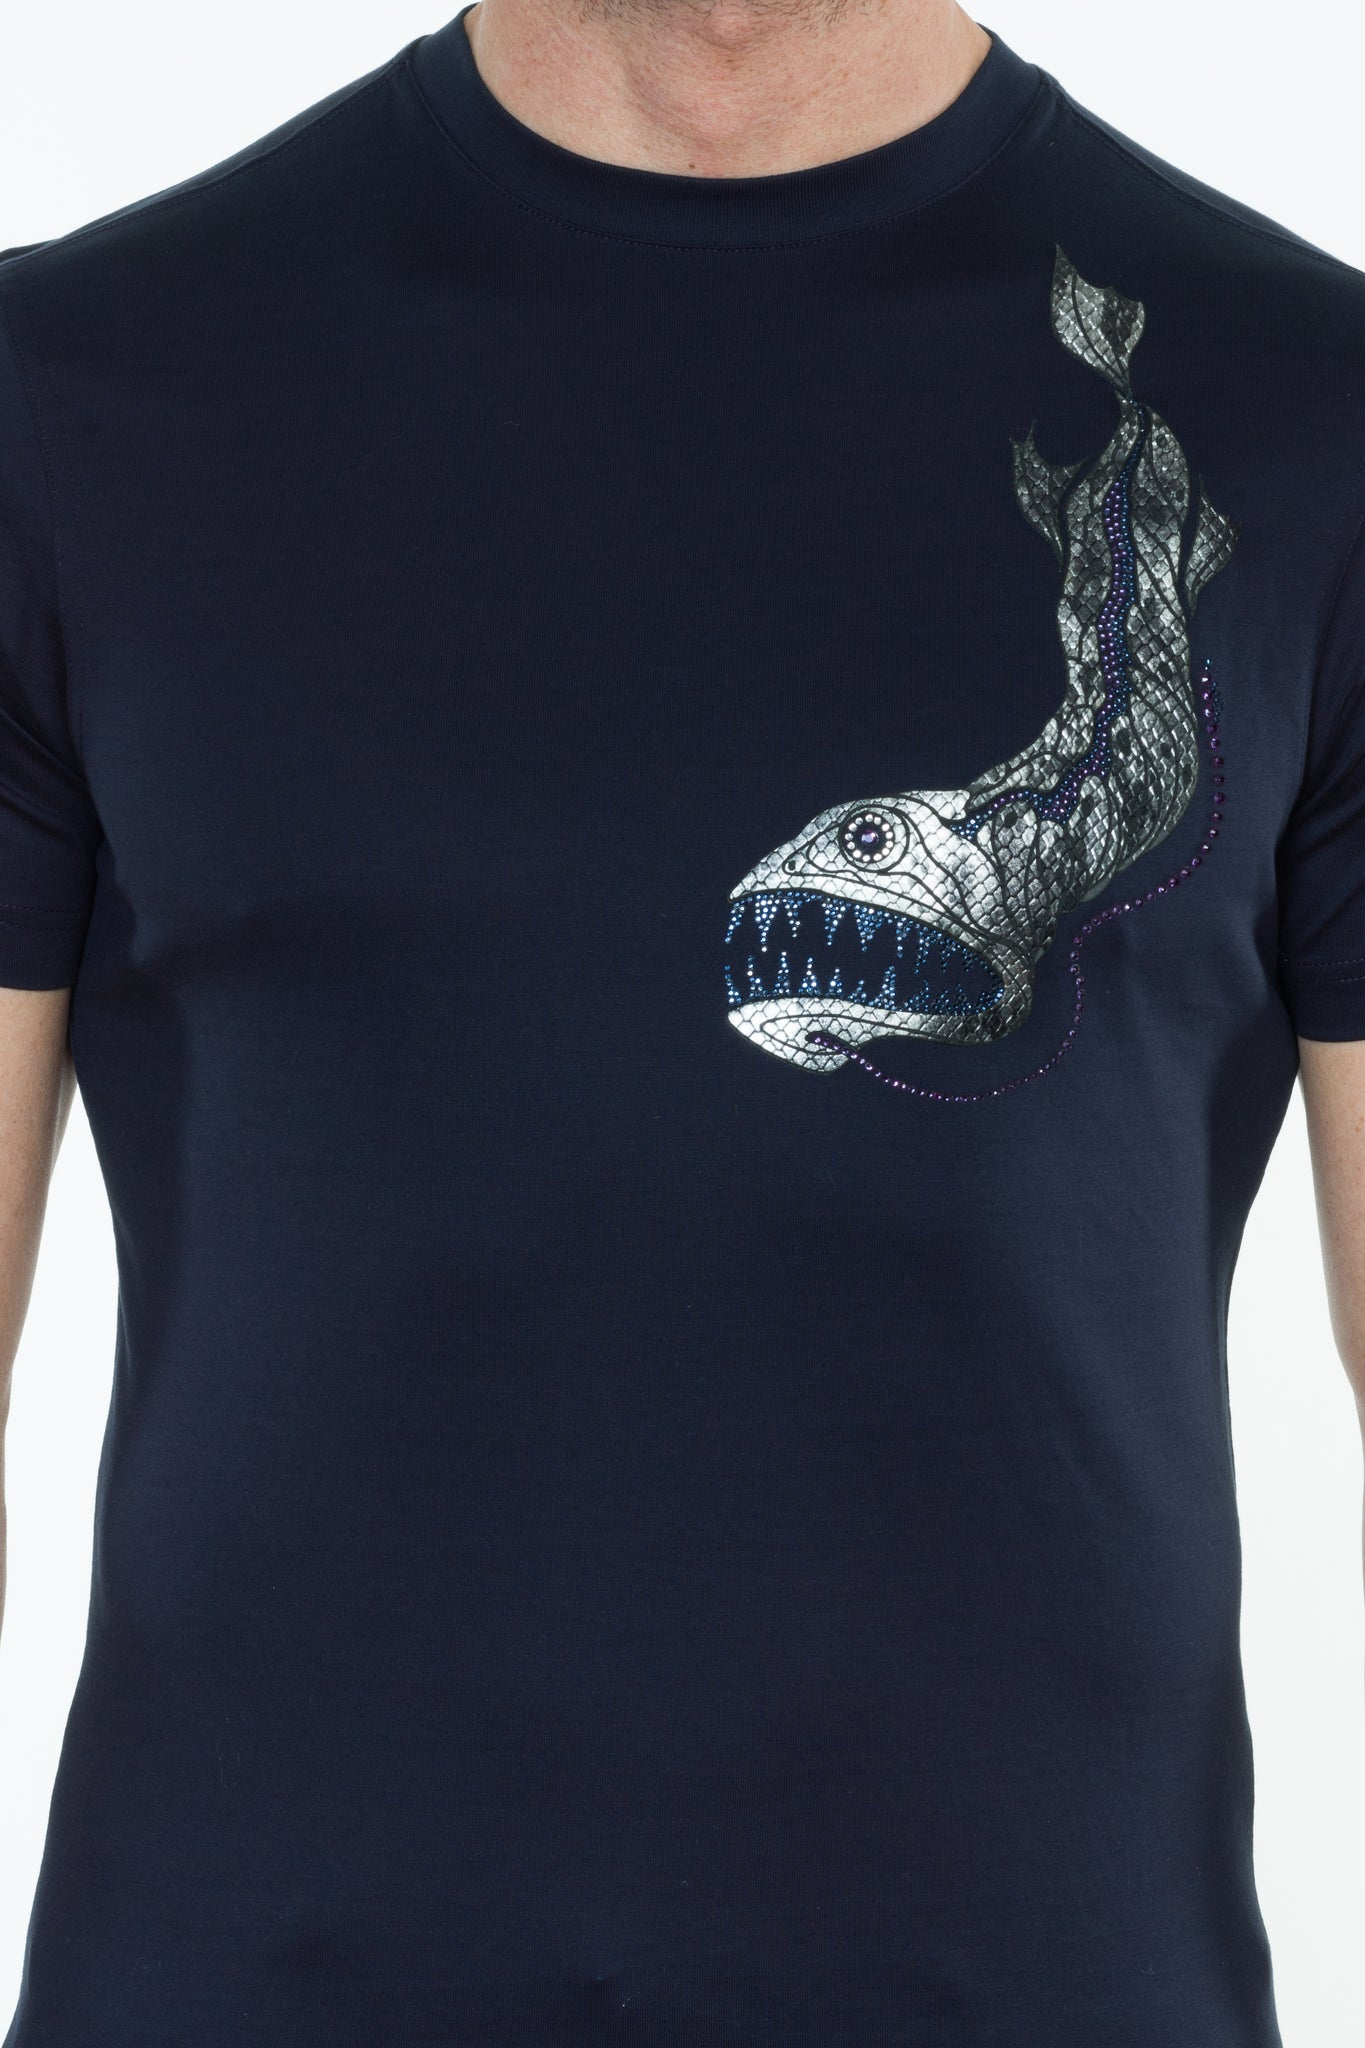 DRAGONFISH PRINT T-SHIRT - DIMORAL OFFICIAL